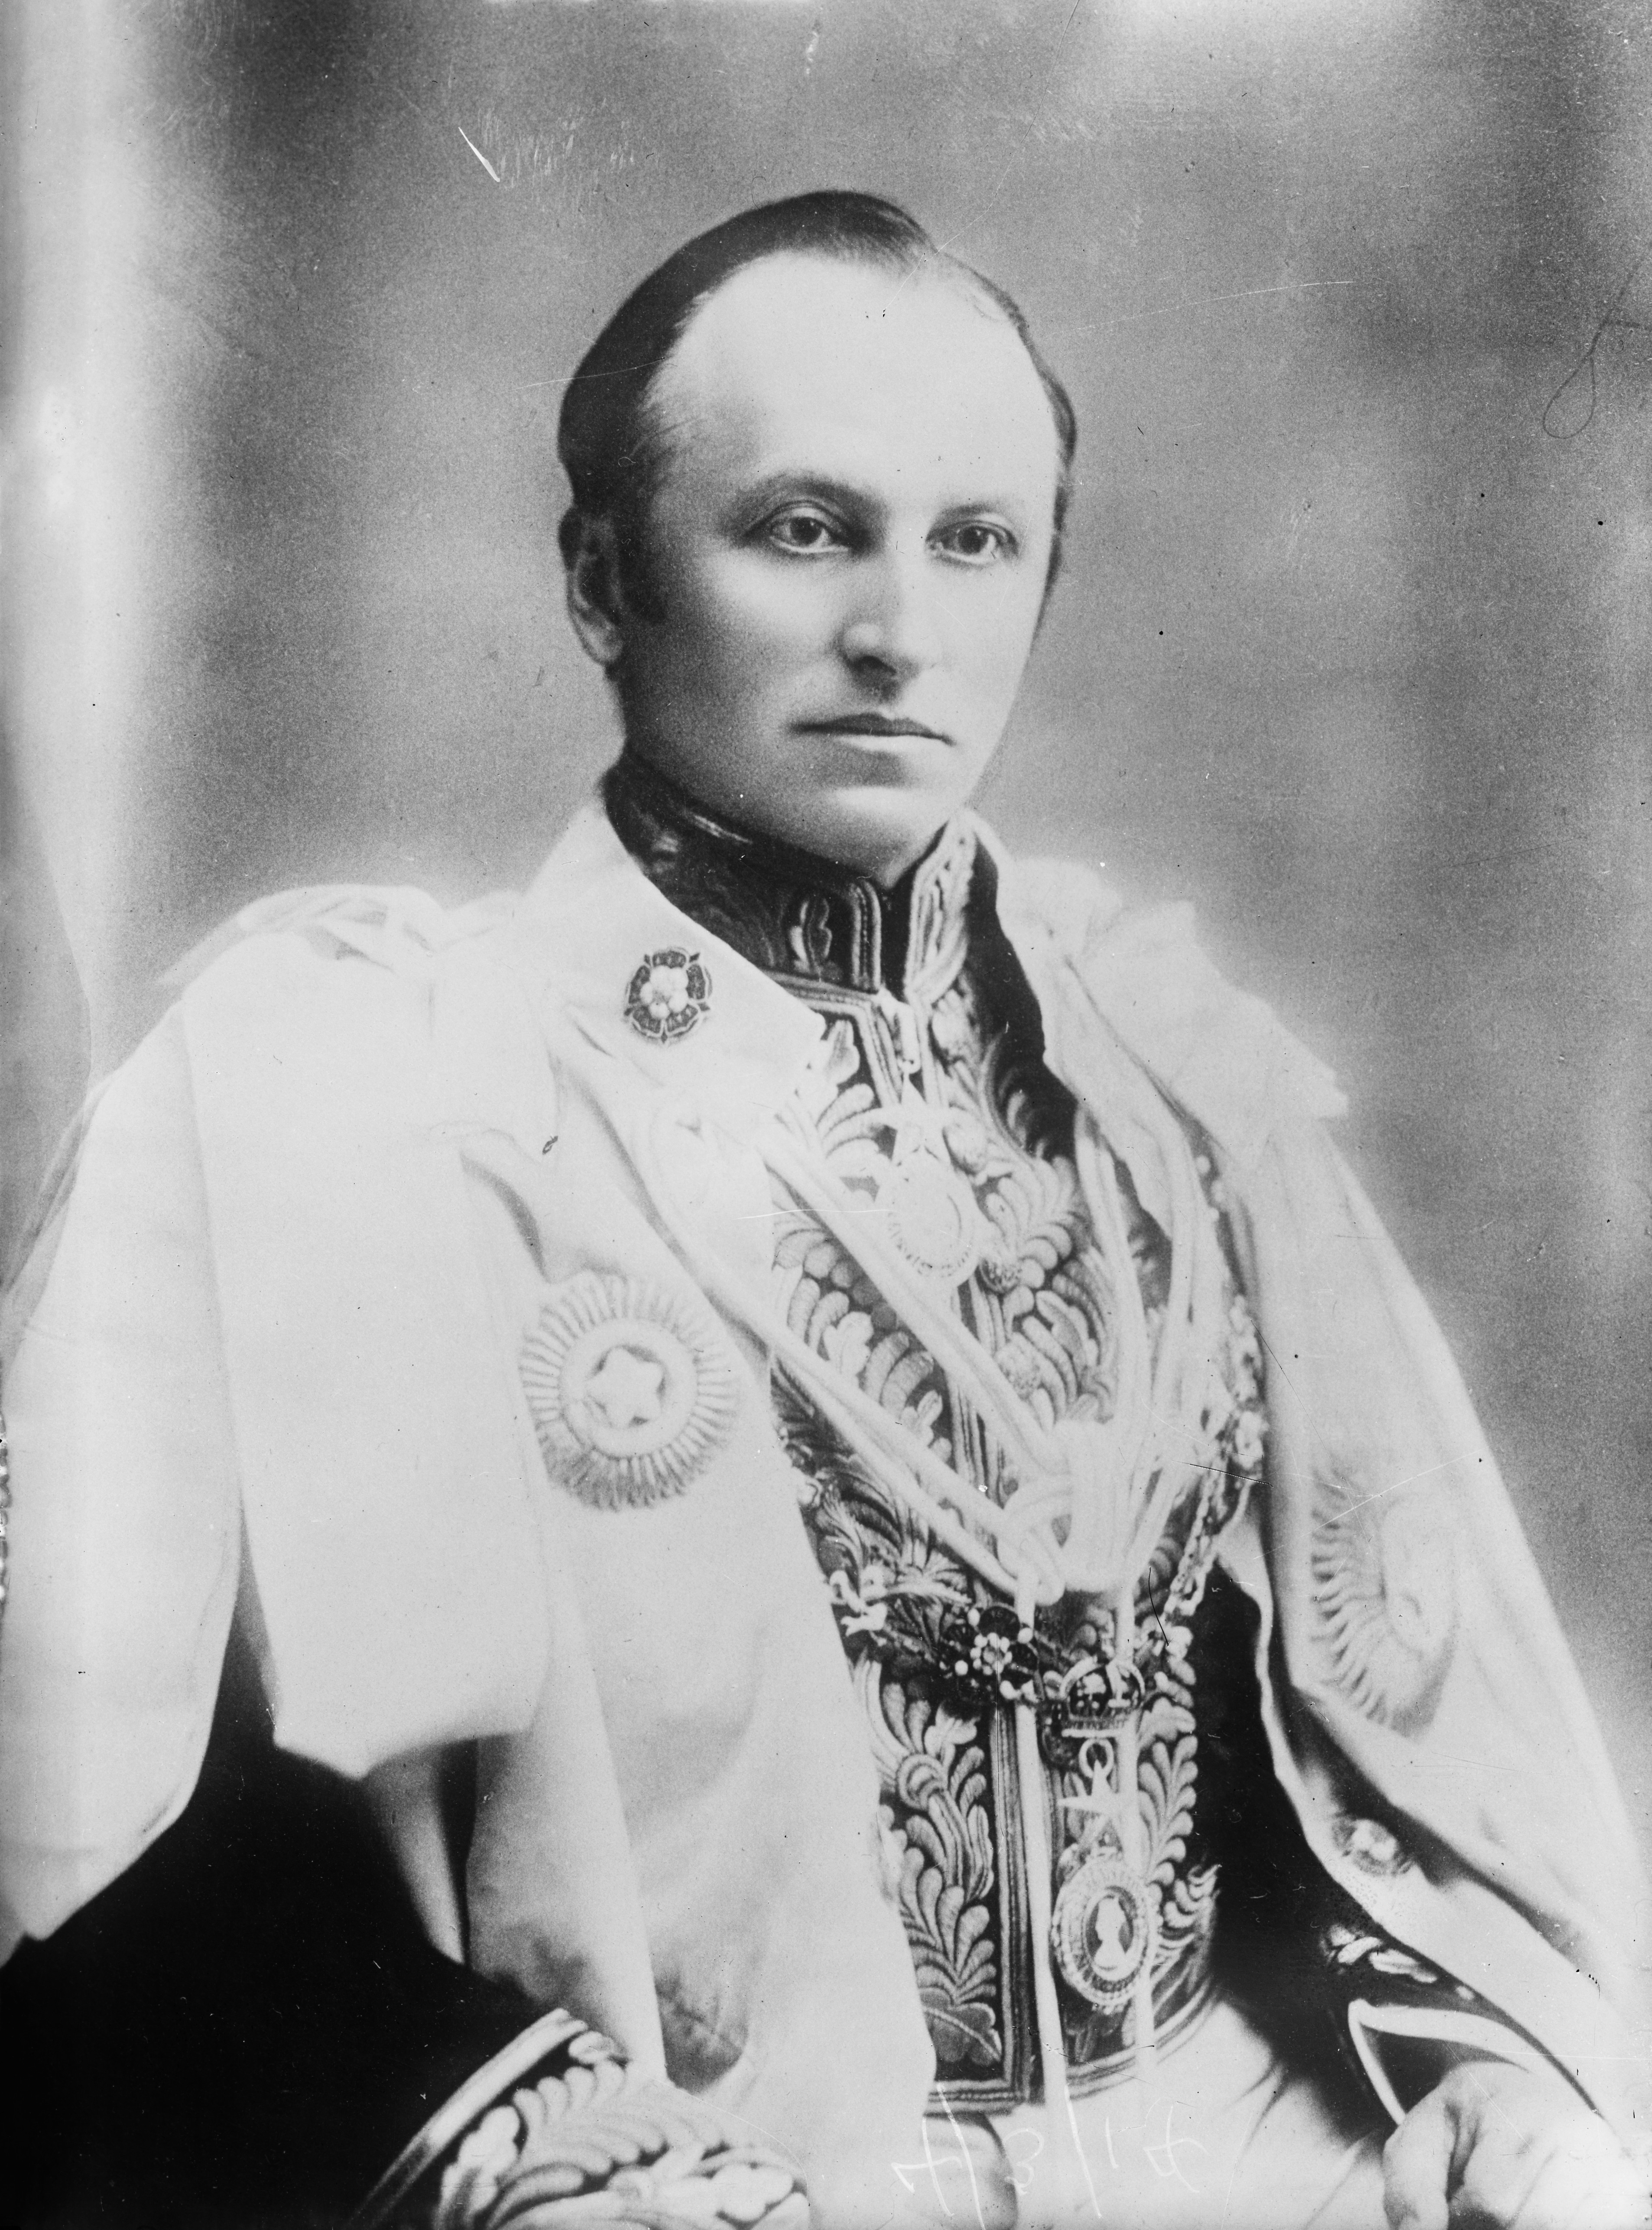 Lord Curzon in his robes as viceroy of India, a post he held from 1899 to 1905. George Curzon2.jpg